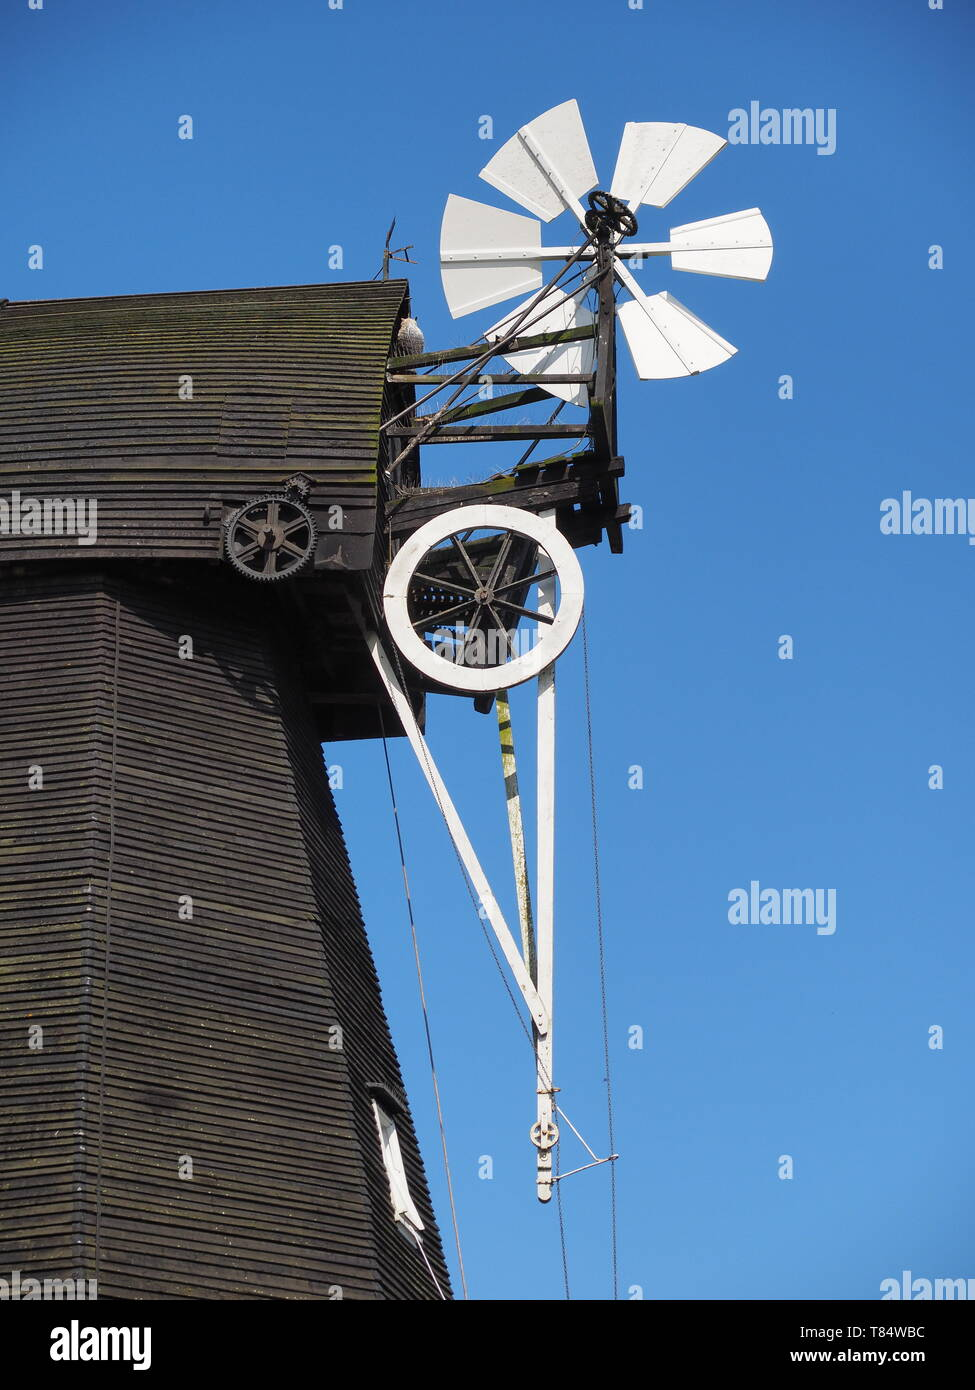 Herne, Kent, UK. 11th May, 2019. National Mills Weekend is the annual festival of British milling heritage: Herne Windmill in Kent took part in this national event by opening the doors of its windmill to the public this afternoon. Herne Mill is a Kentish smock windmill dating from 1789. It is Grade I listed and is owned by Kent County Council and cared for by the Friends of Herne Mill.   Credit: James Bell/Alamy Live News - Stock Image